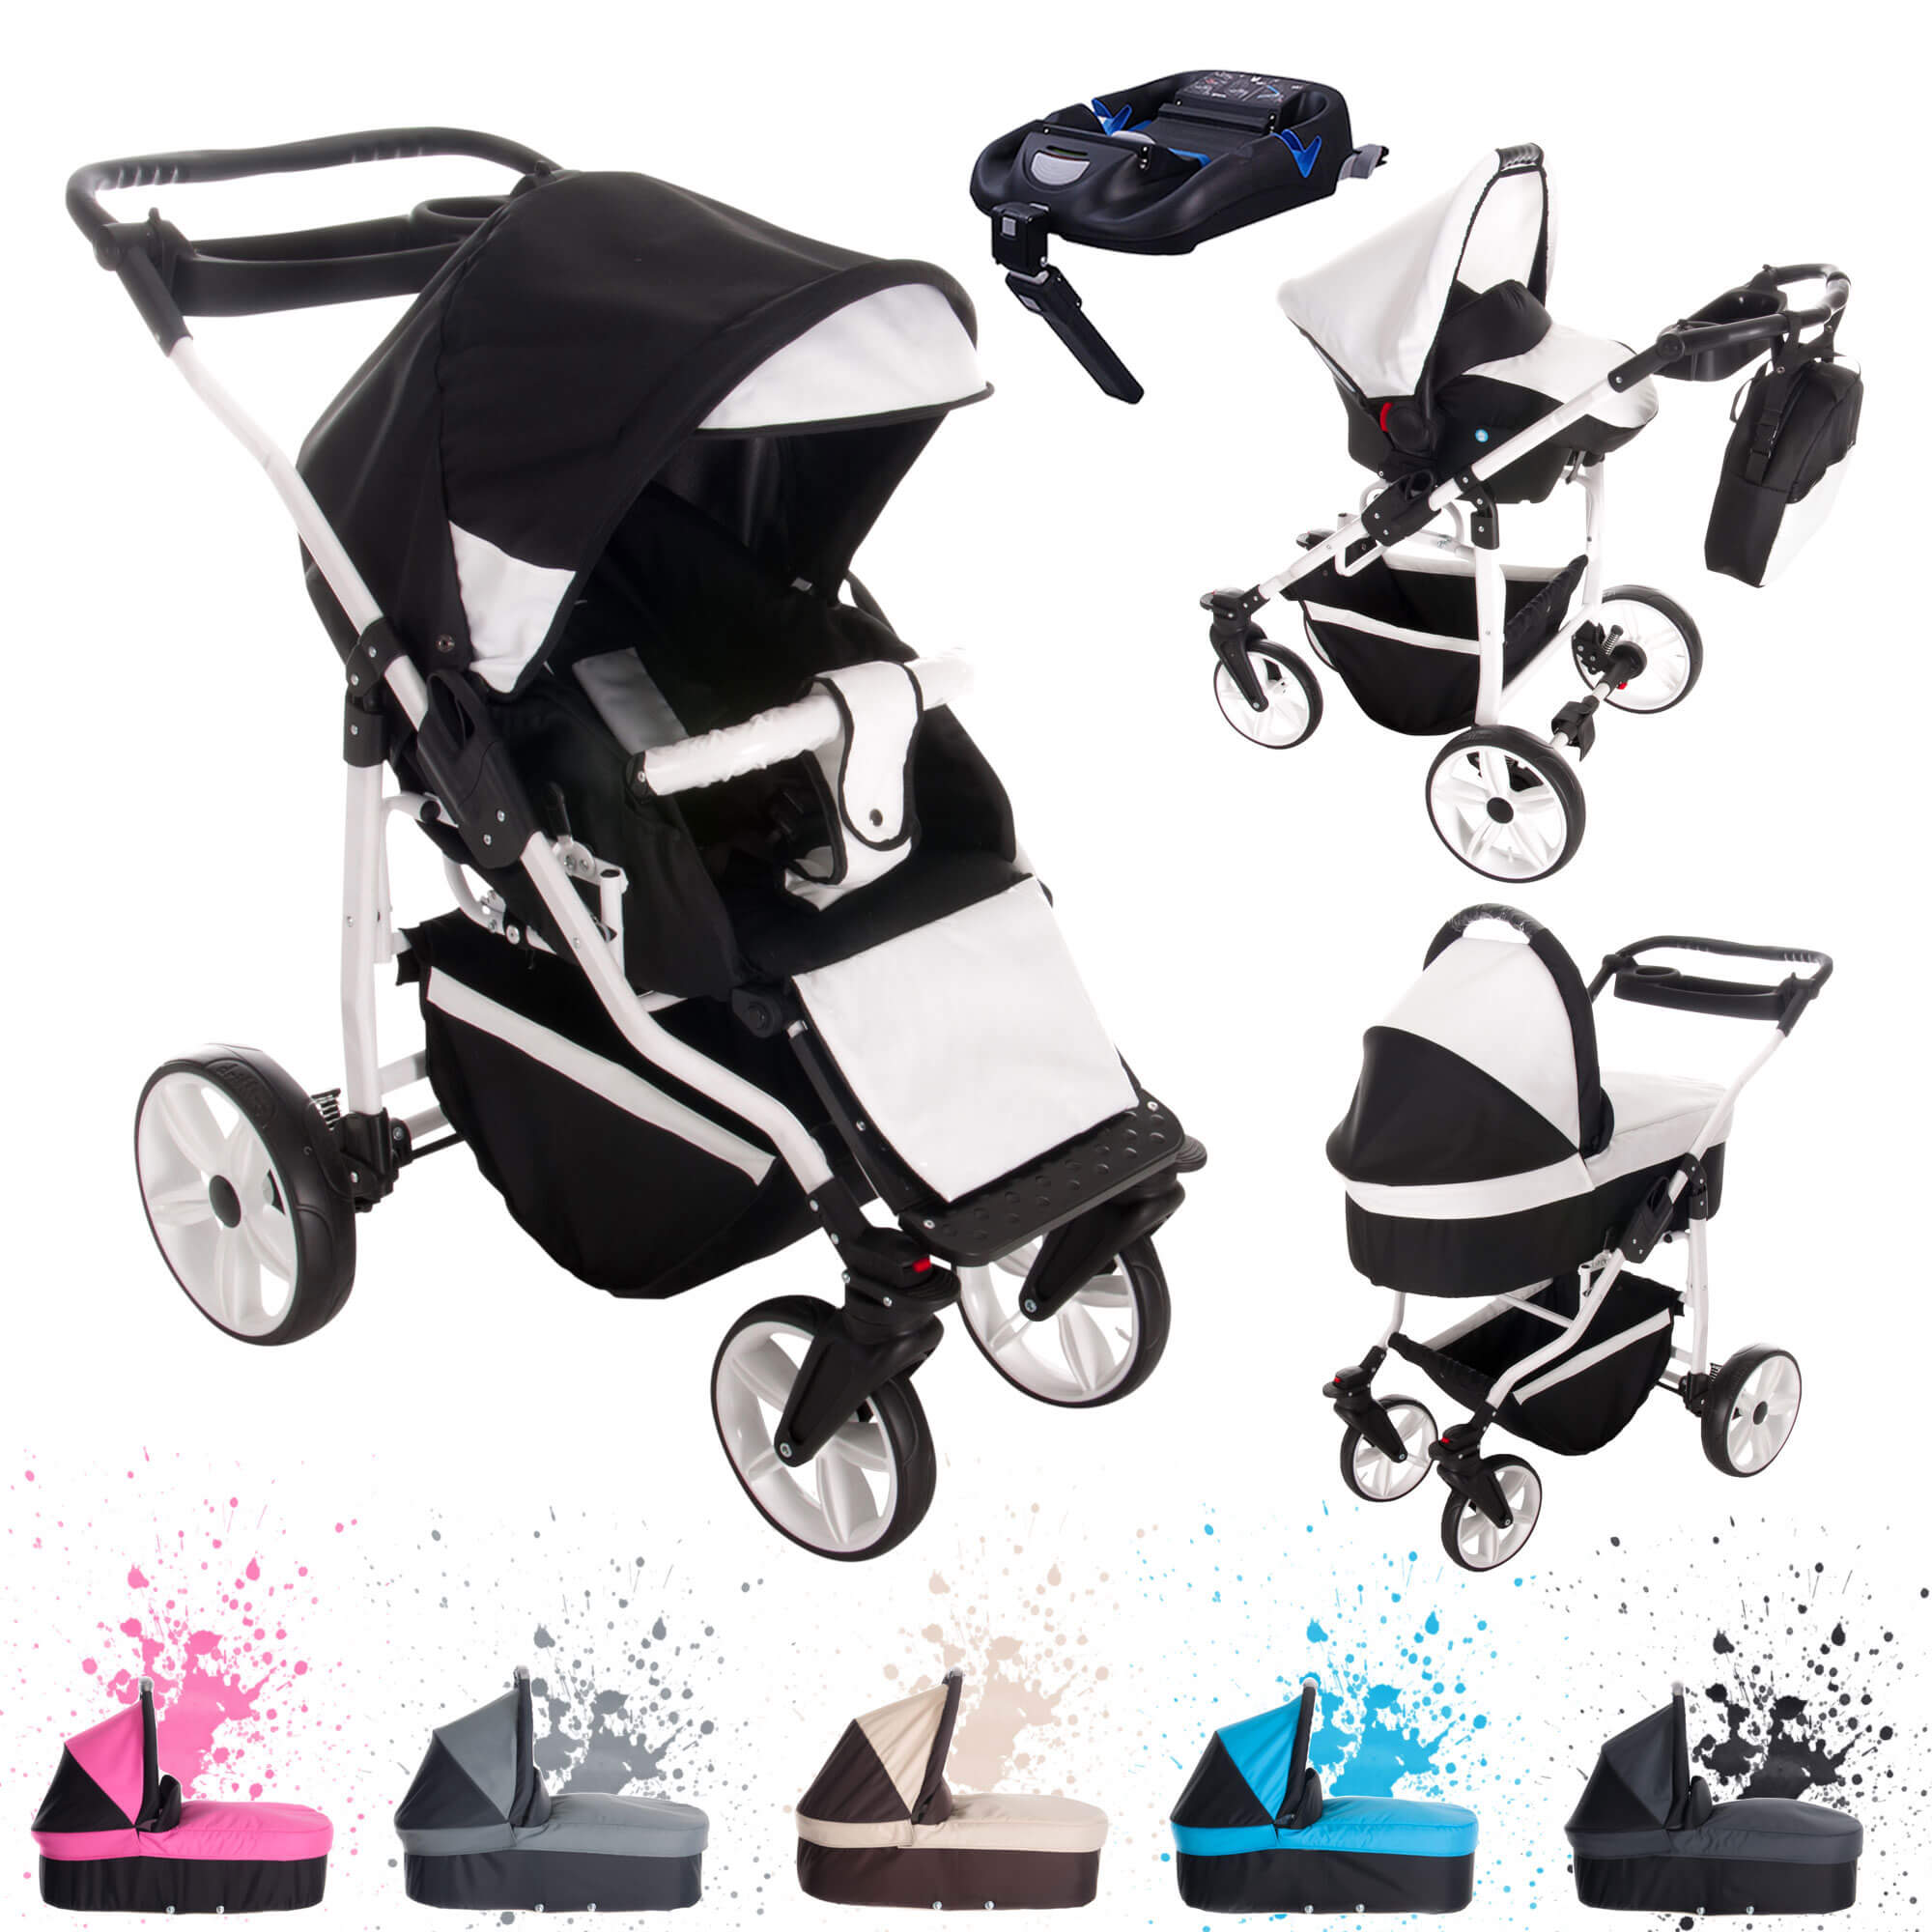 bebebi z rich isofix basis autositz 4 in 1 kombi. Black Bedroom Furniture Sets. Home Design Ideas